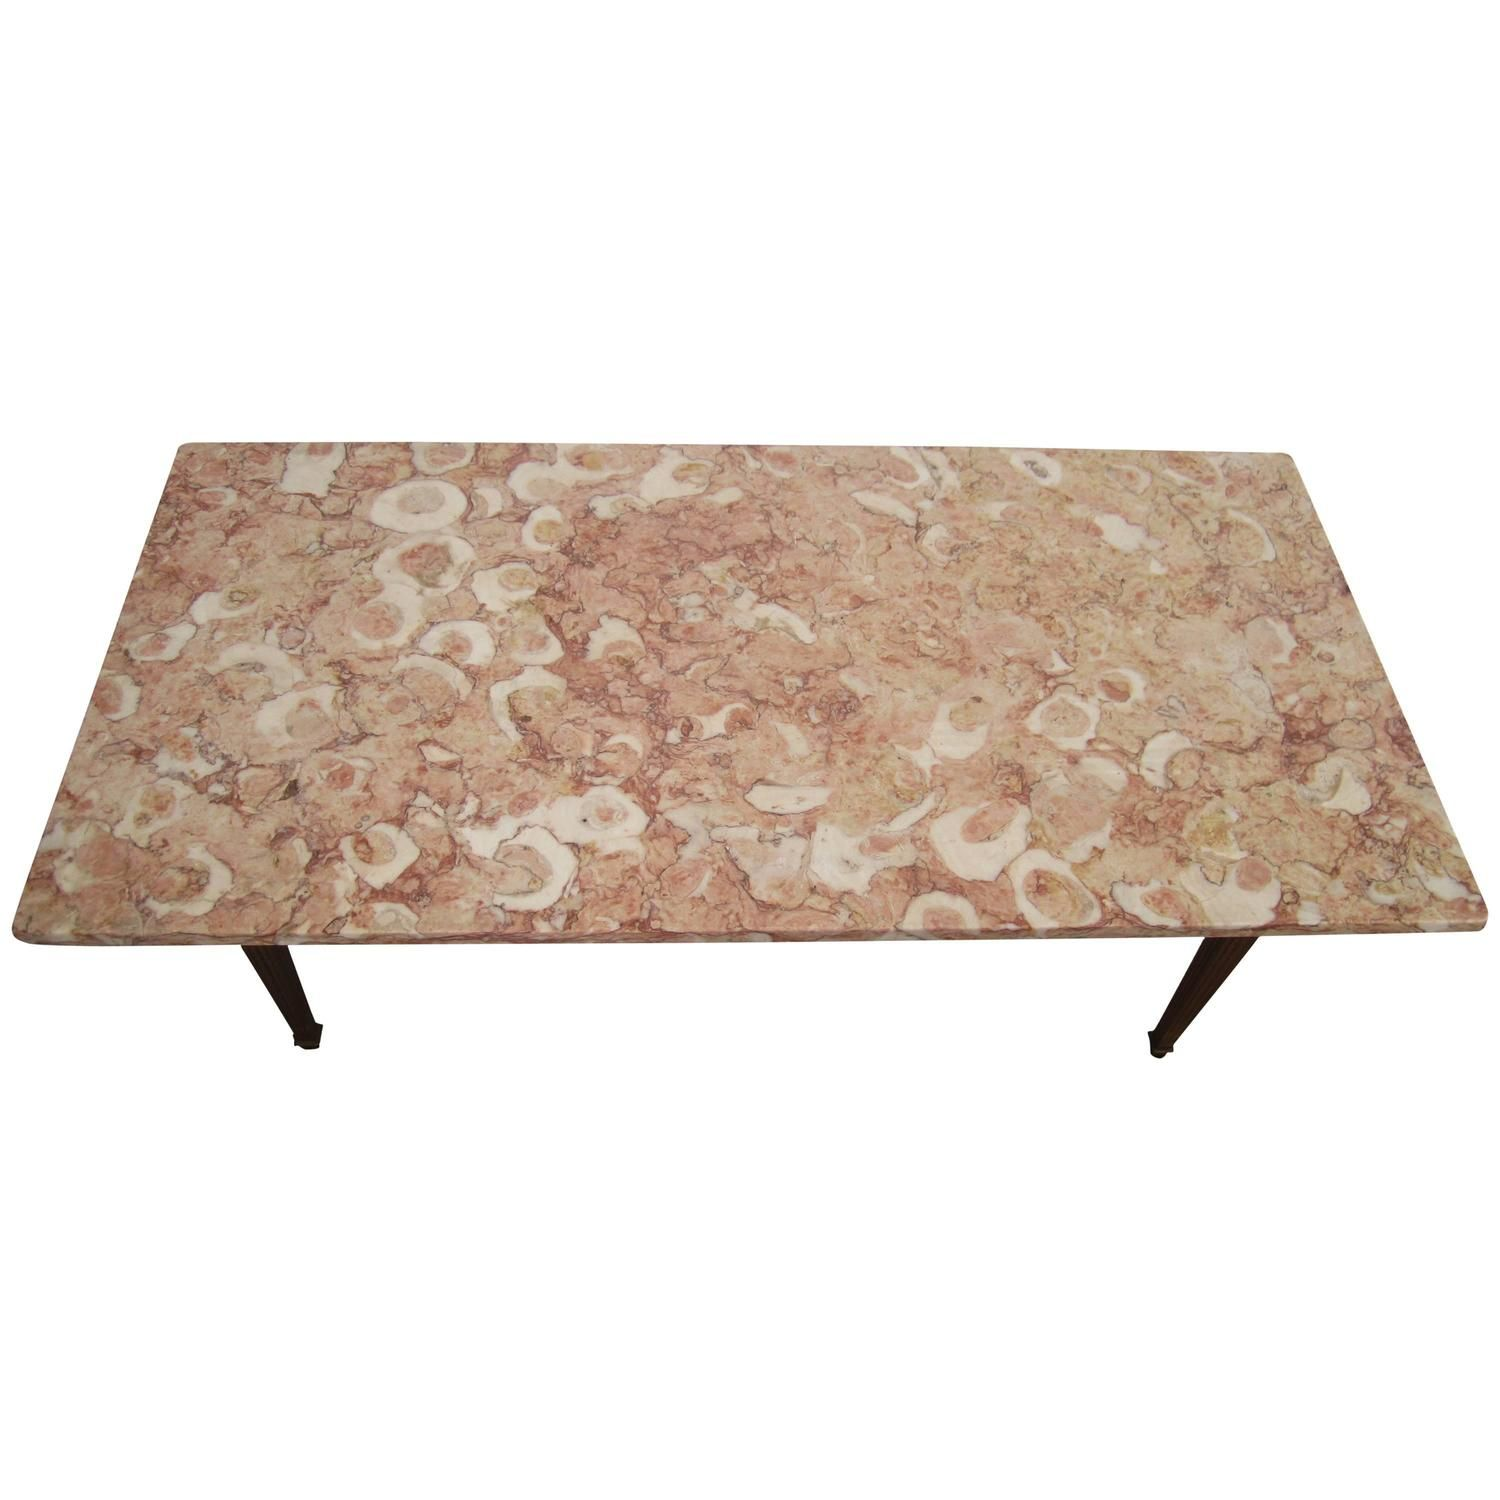 Italian Marble Top Coffee Table Rascalartsnyc